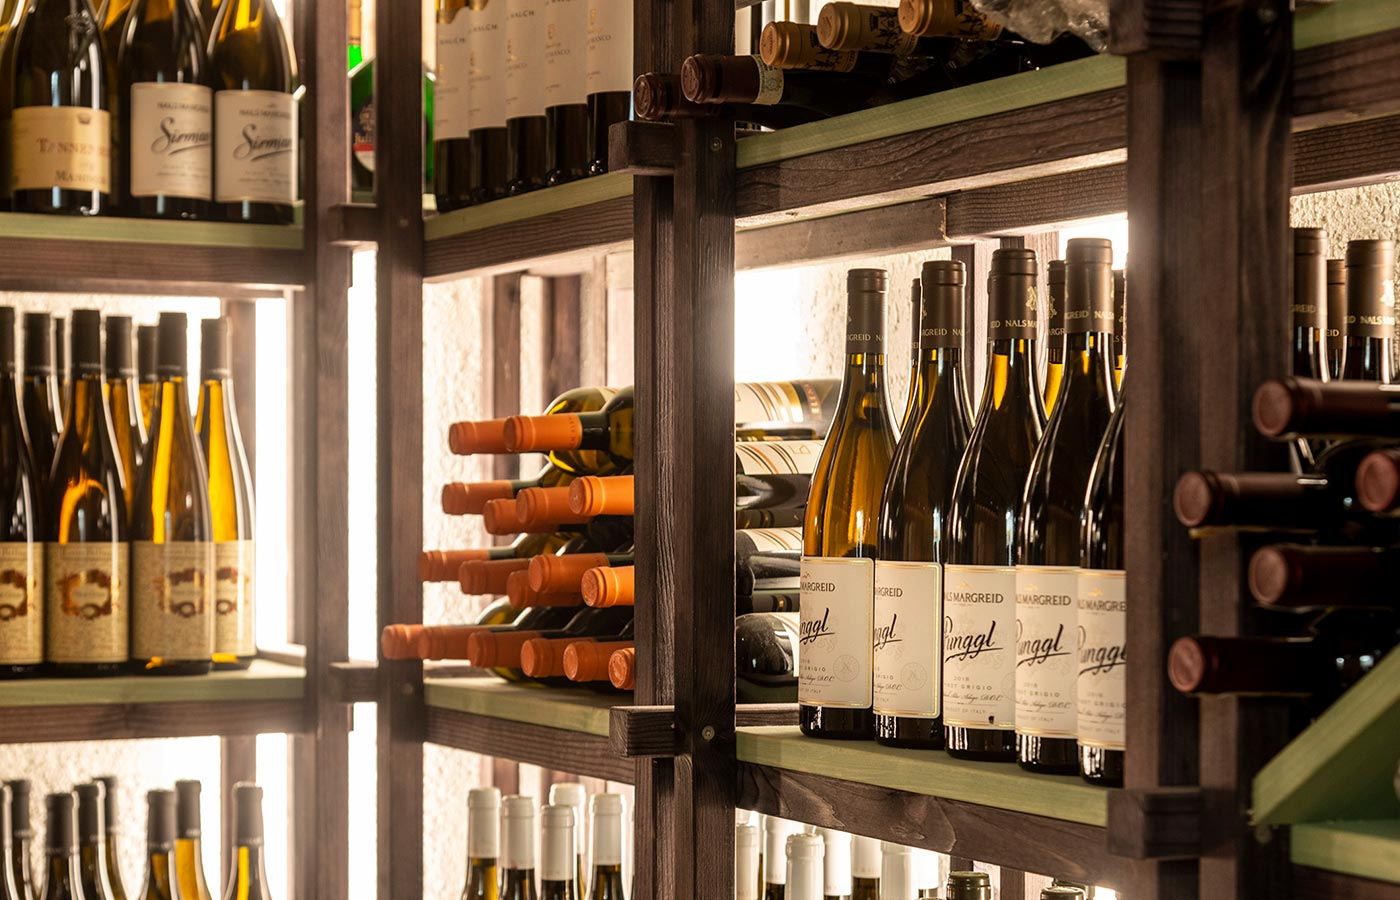 the equipped wine cellar of the Hotel Rosskopf in Sterzing